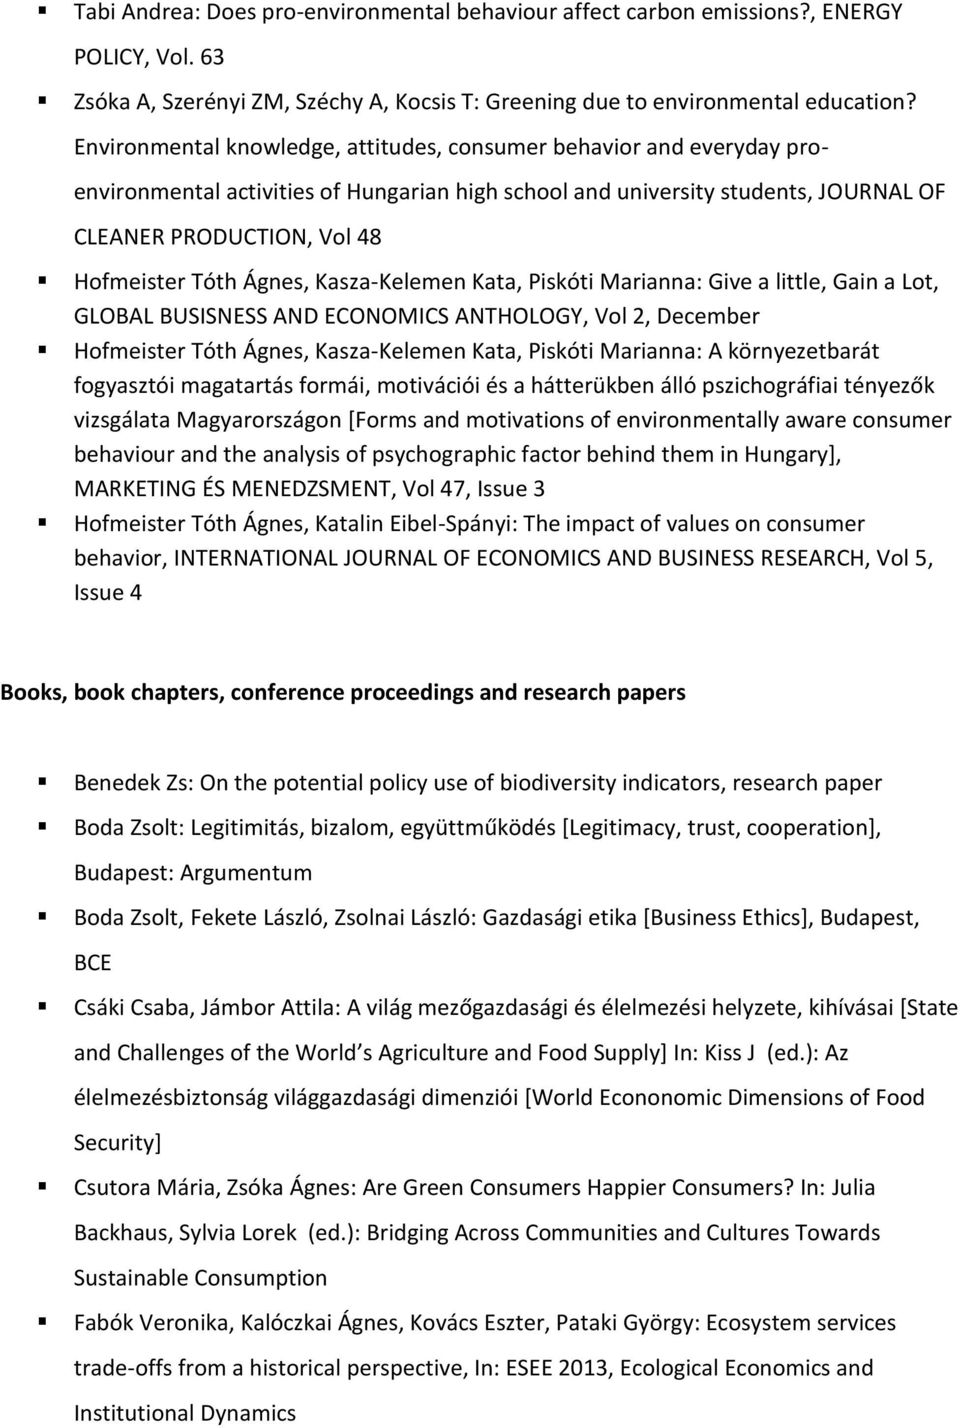 Ágnes, Kasza-Kelemen Kata, Piskóti Marianna: Give a little, Gain a Lot, GLOBAL BUSISNESS AND ECONOMICS ANTHOLOGY, Vol 2, December Hofmeister Tóth Ágnes, Kasza-Kelemen Kata, Piskóti Marianna: A